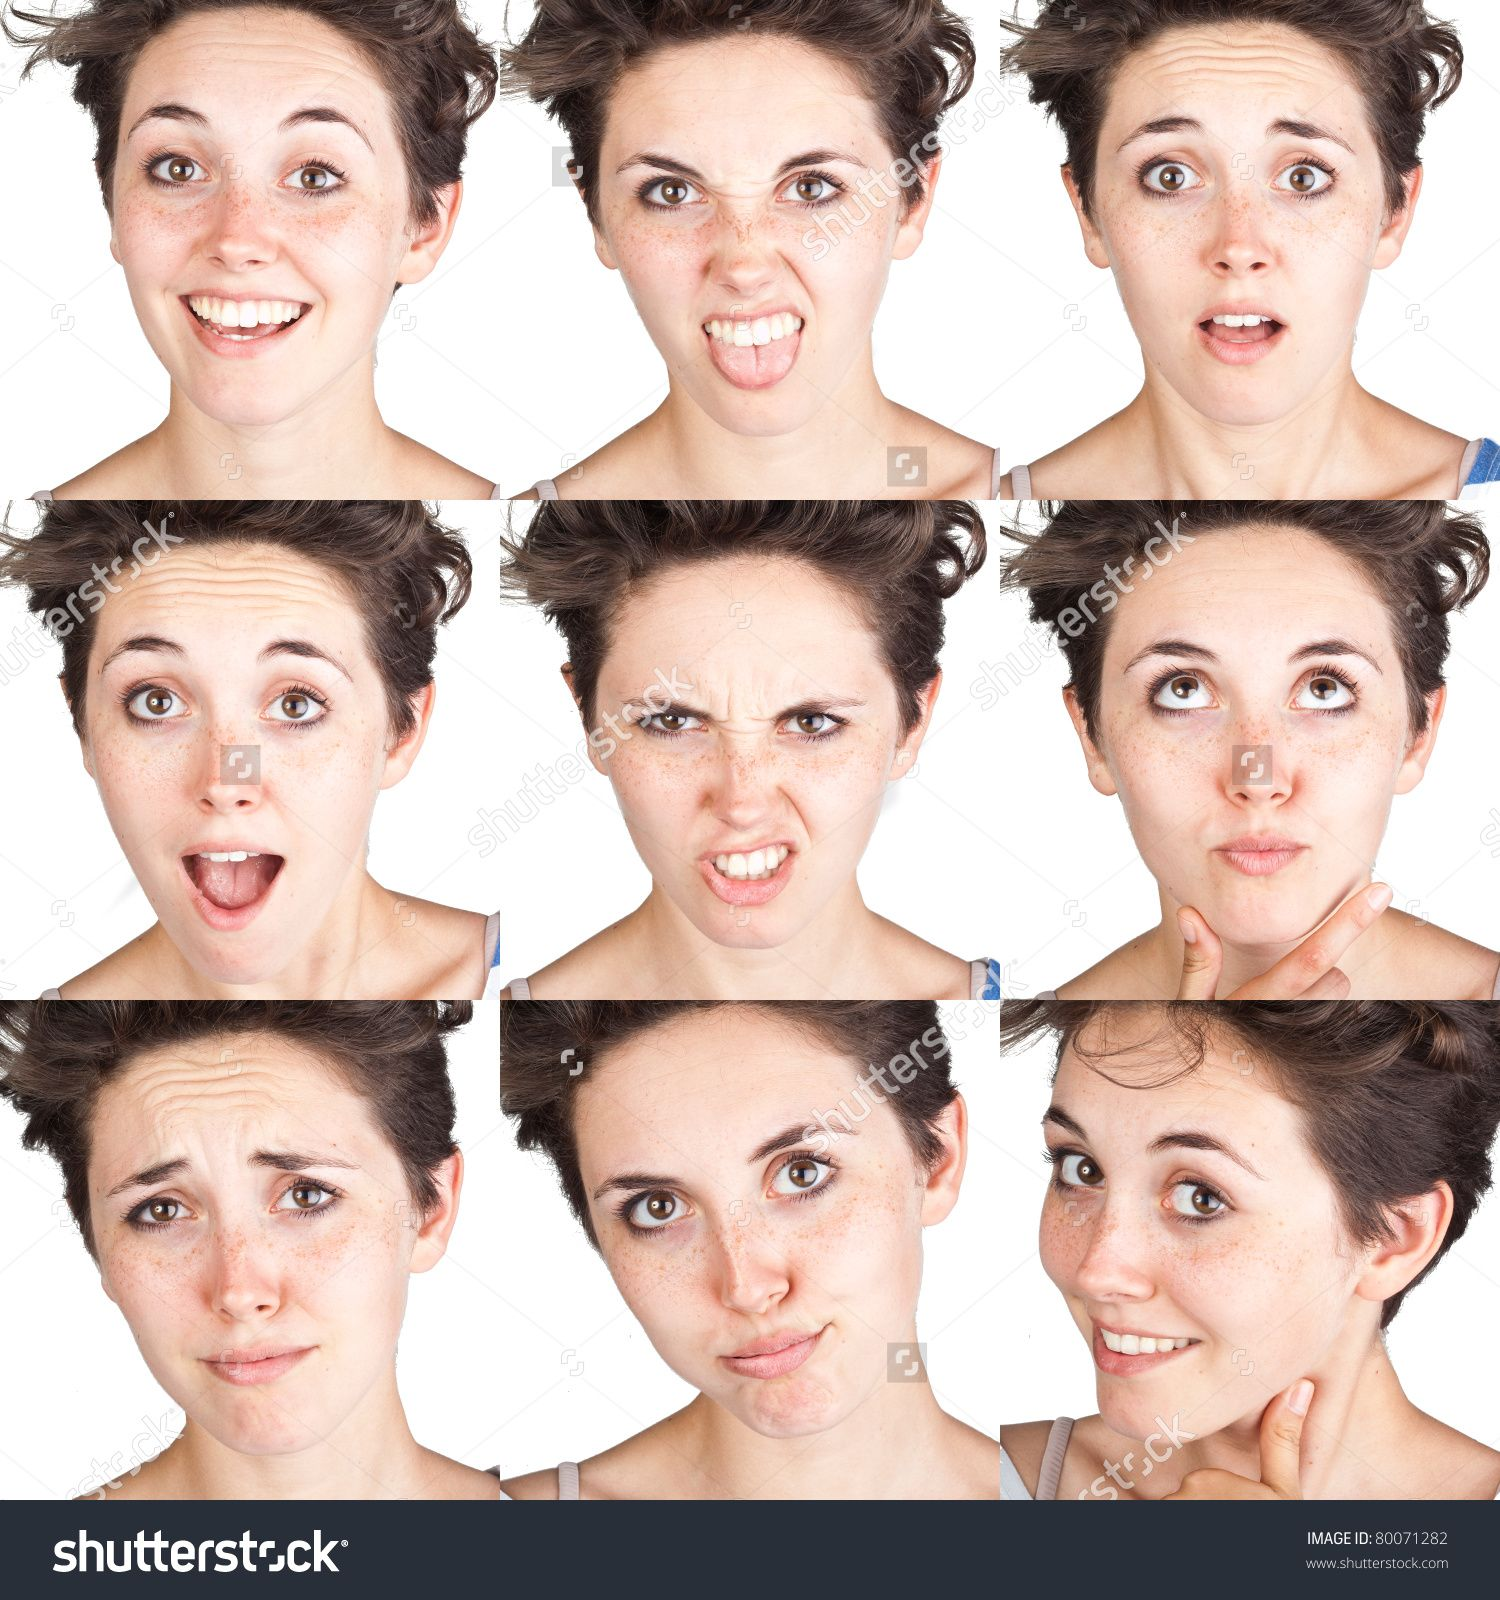 Pin By Paul Hadcock On Face Expressions